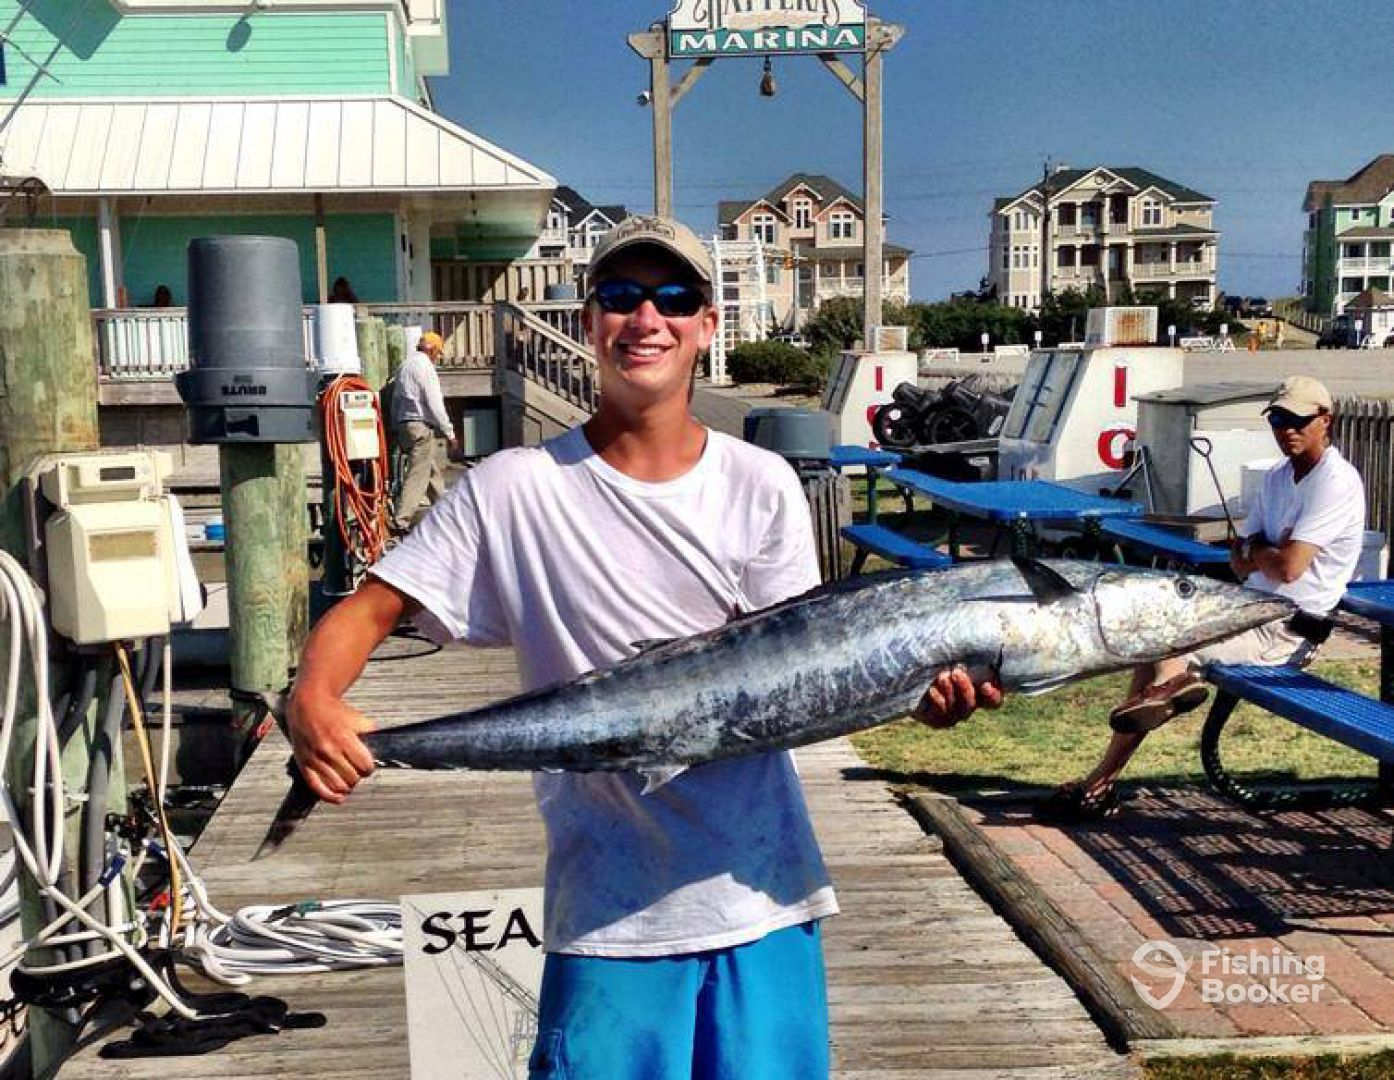 Sea Dream Offshore Charters